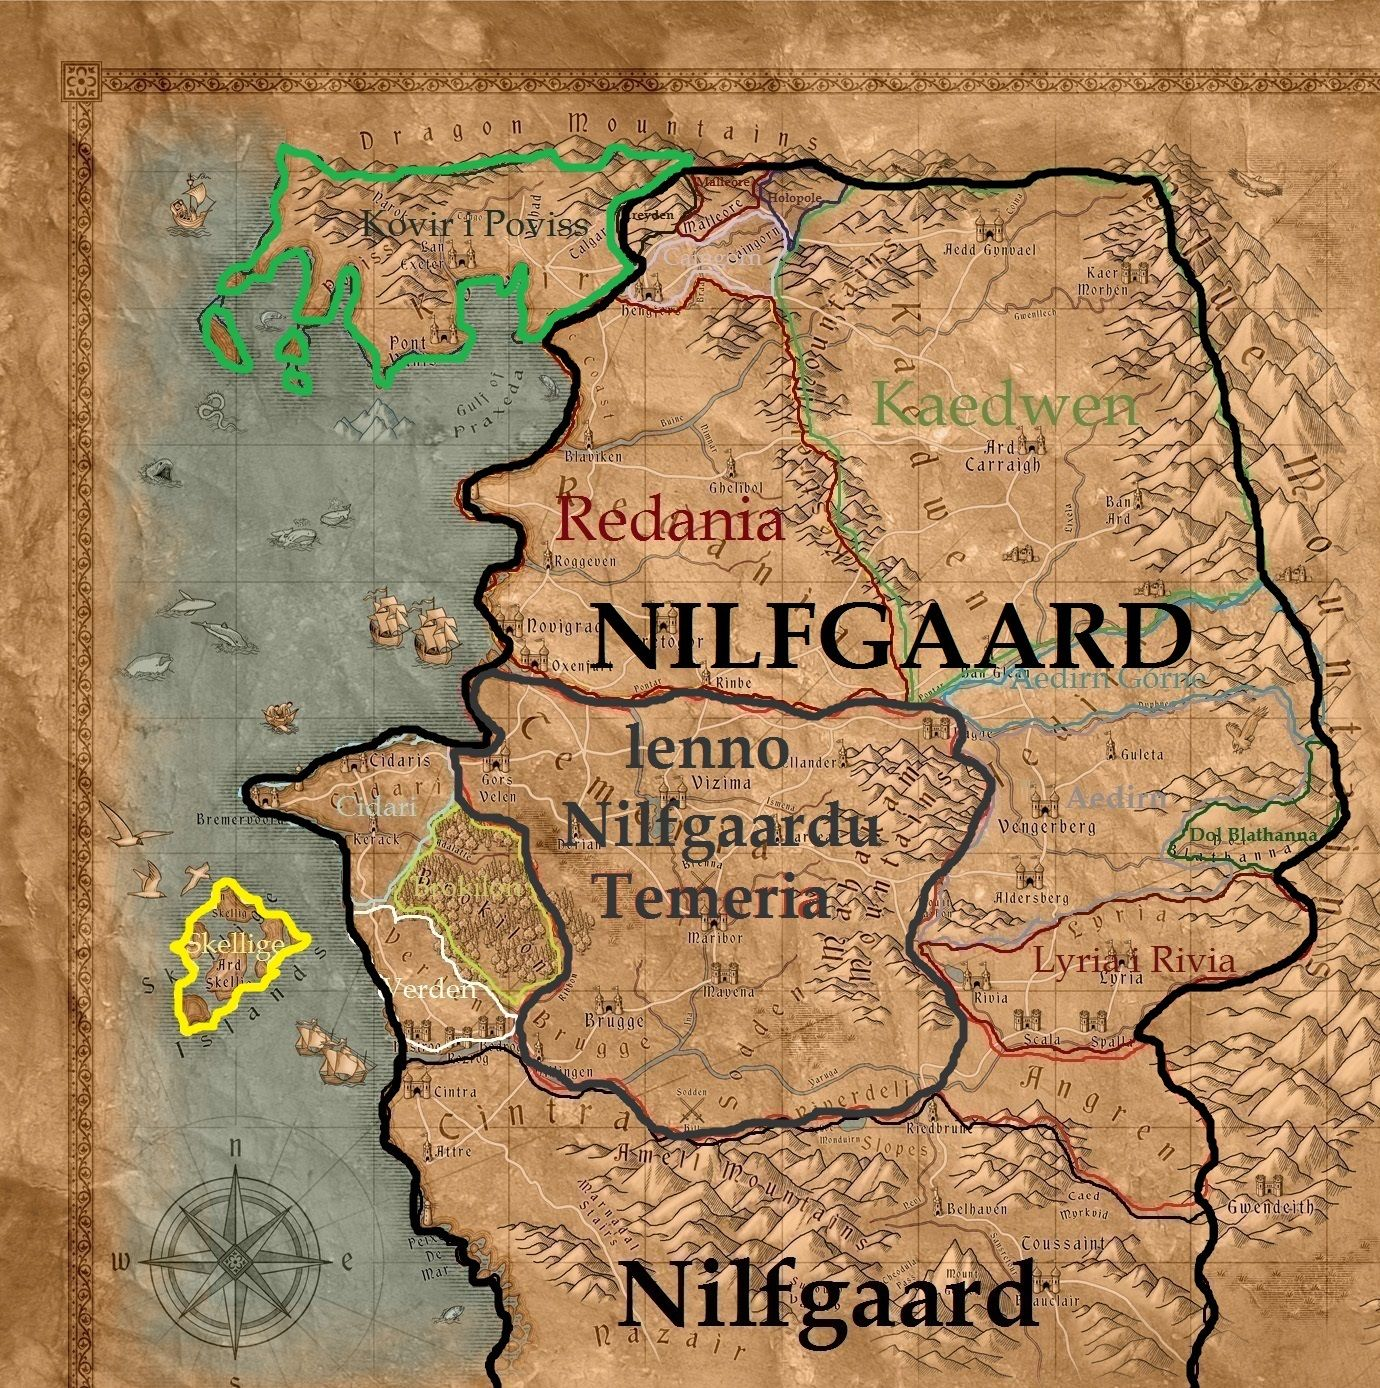 20+ Nilfgaard Witcher 3 Map Pictures and Ideas on Weric